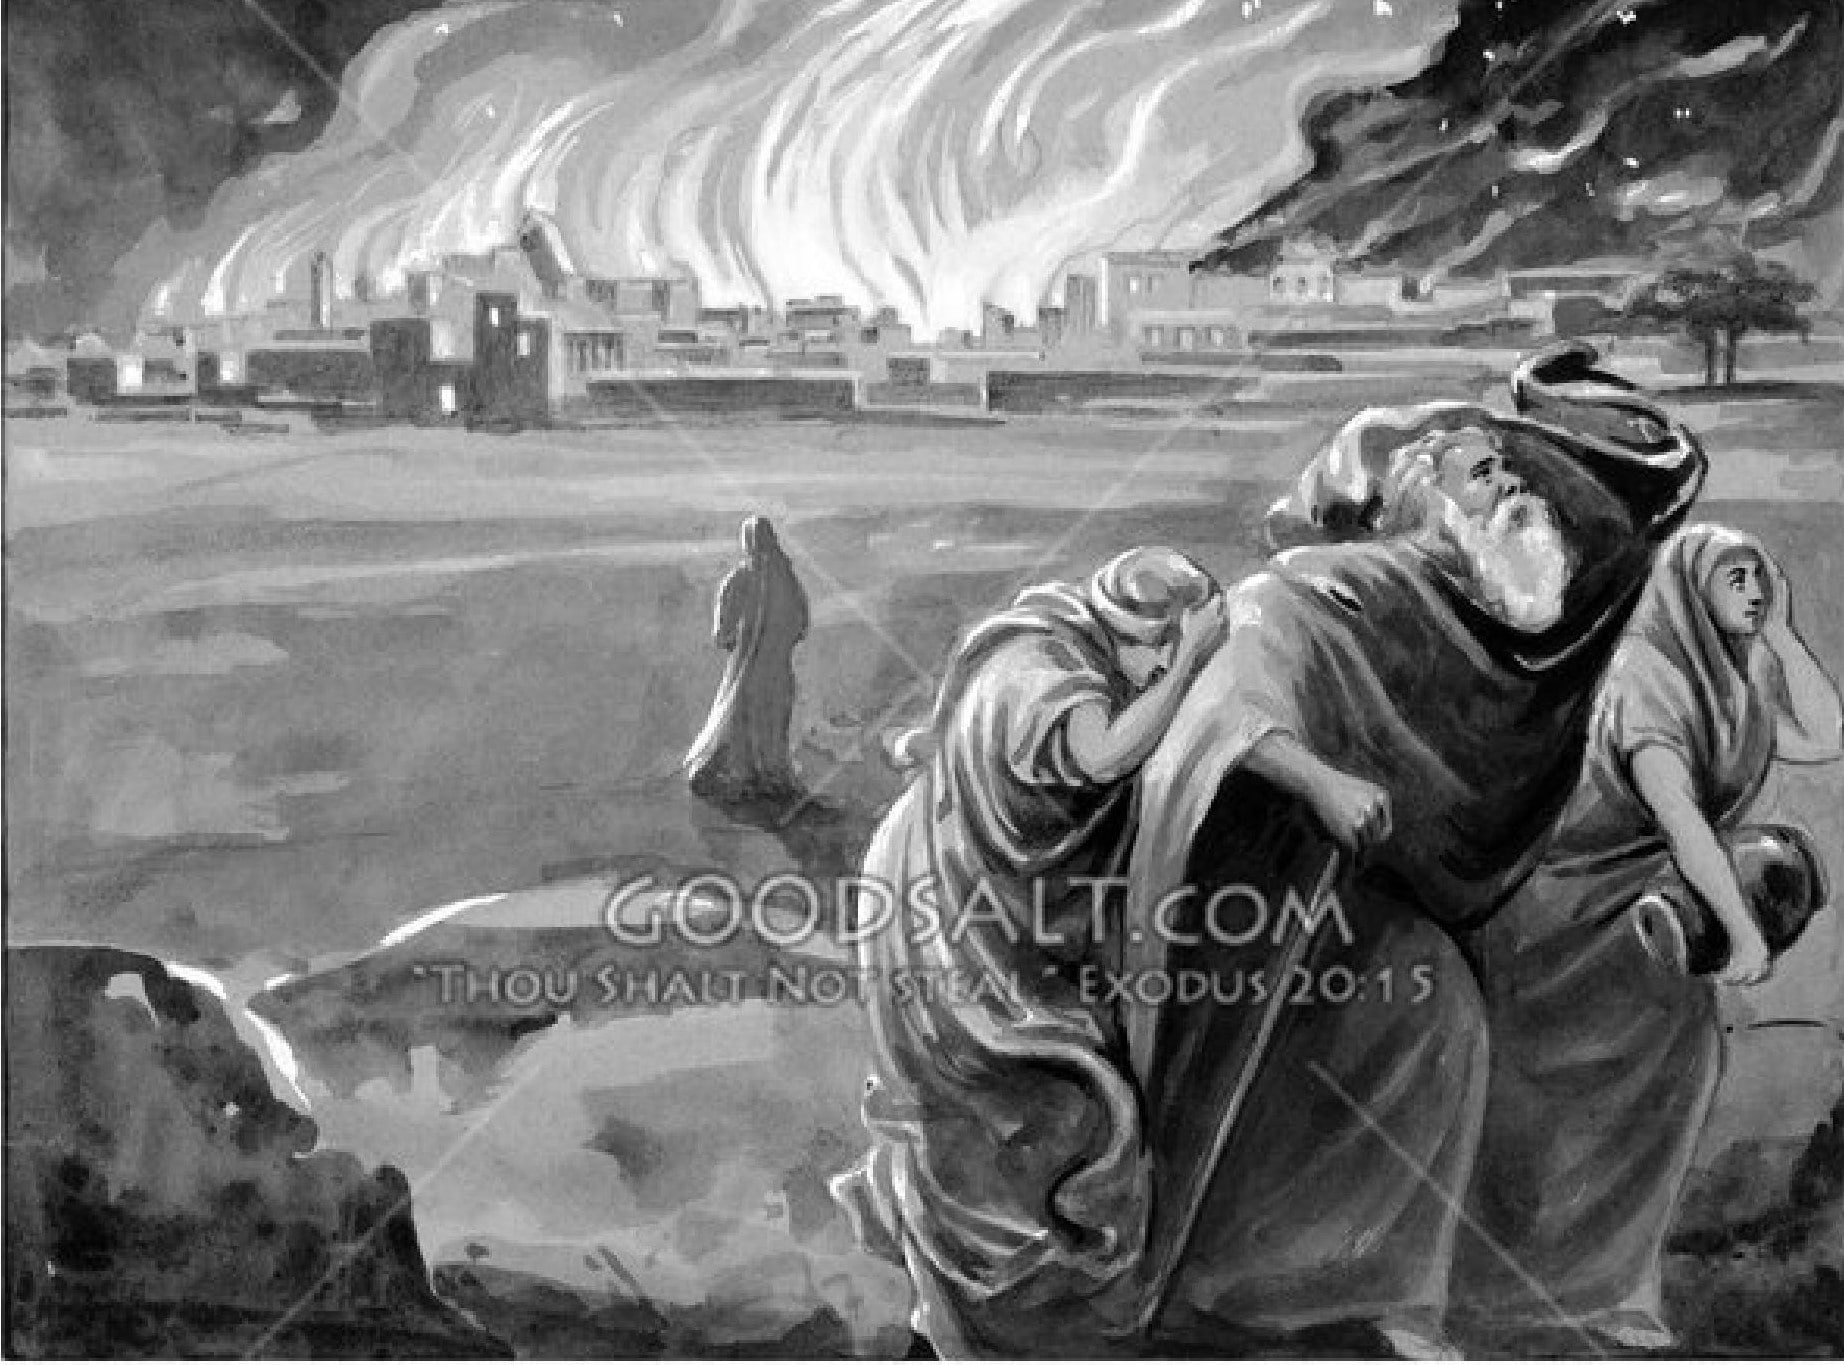 Historical Injustice of Sodom and Gomorrah – Faithfreedom org